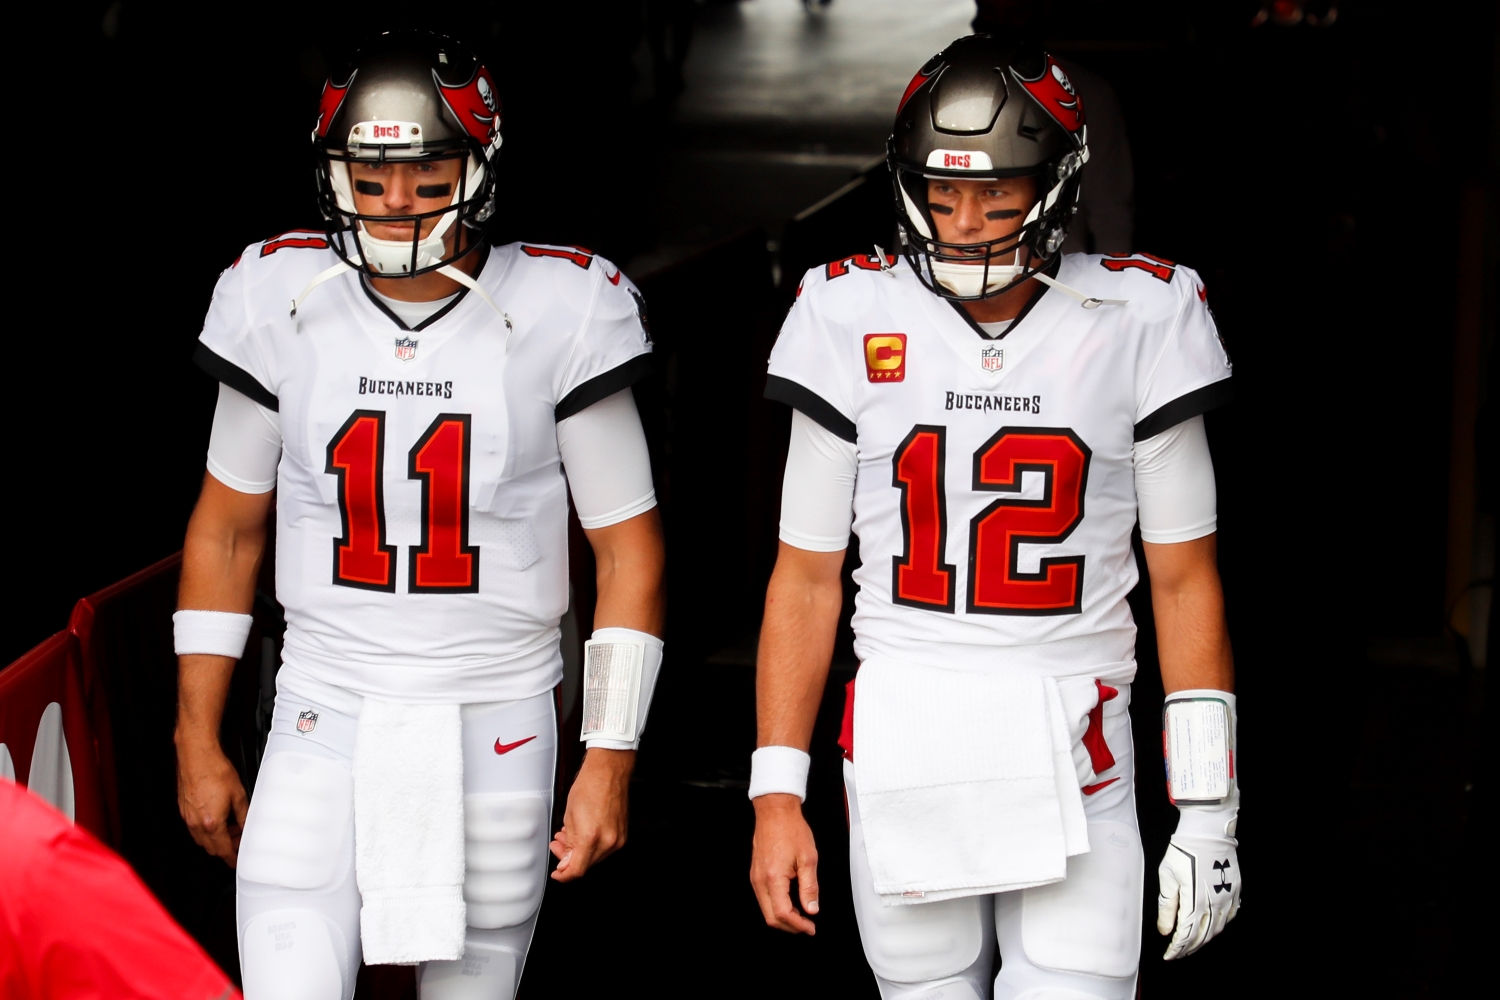 Tom Brady and Blaine Gabbert of the Tampa Bay Buccaneers enter the field before the start of a game against the Los Angeles Chargers.